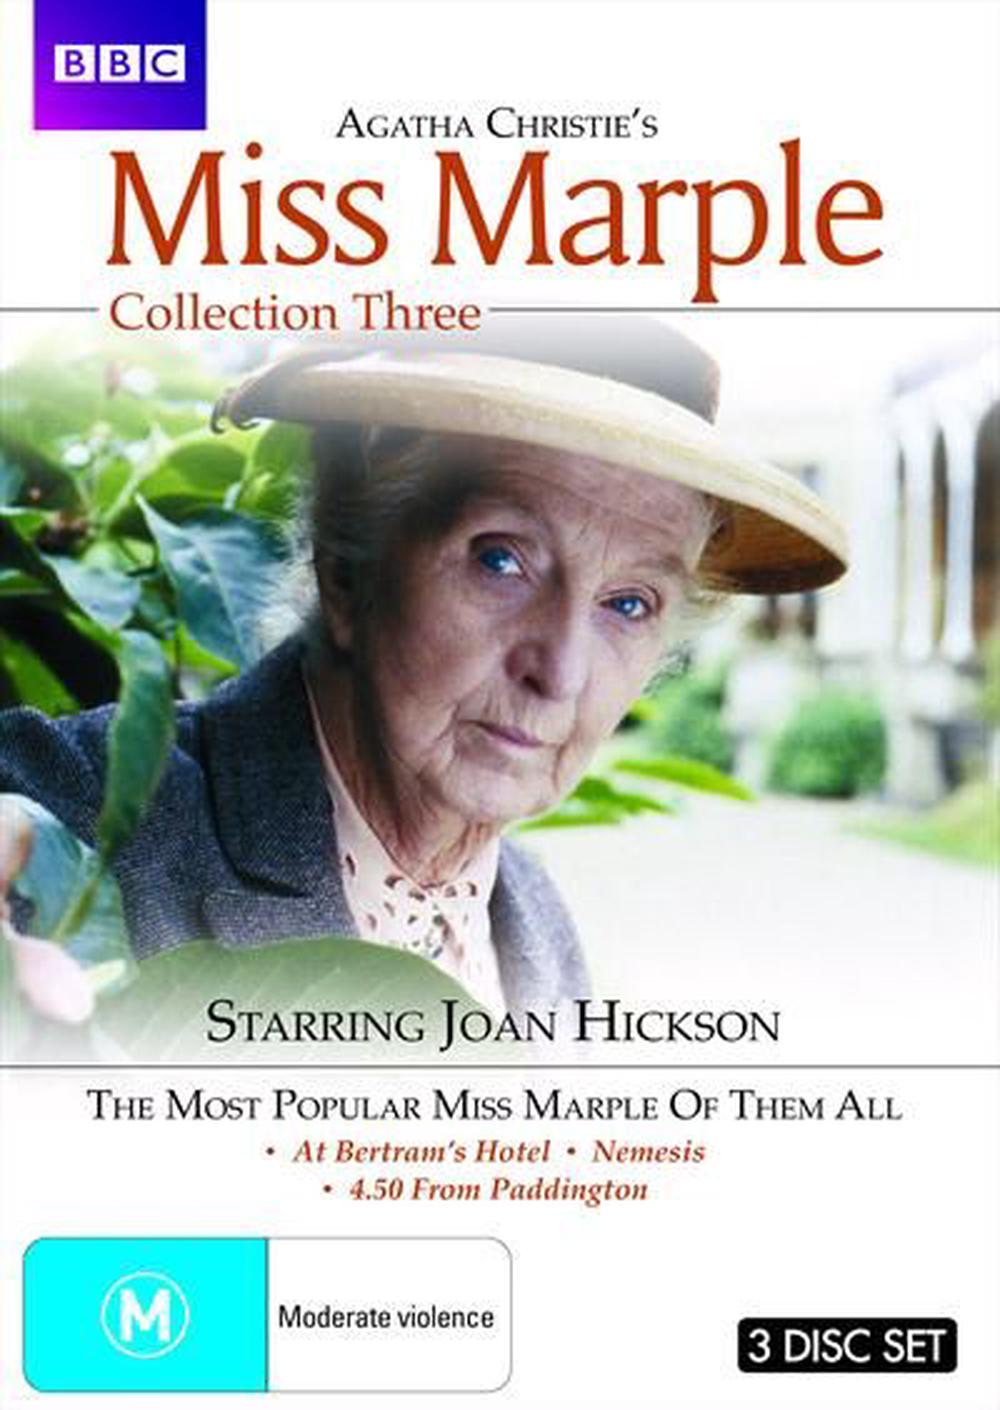 Agatha Christie: Miss Marple - Collection 3 (at Bertram's Hotel / Nemesis / 4.50 from Paddington)